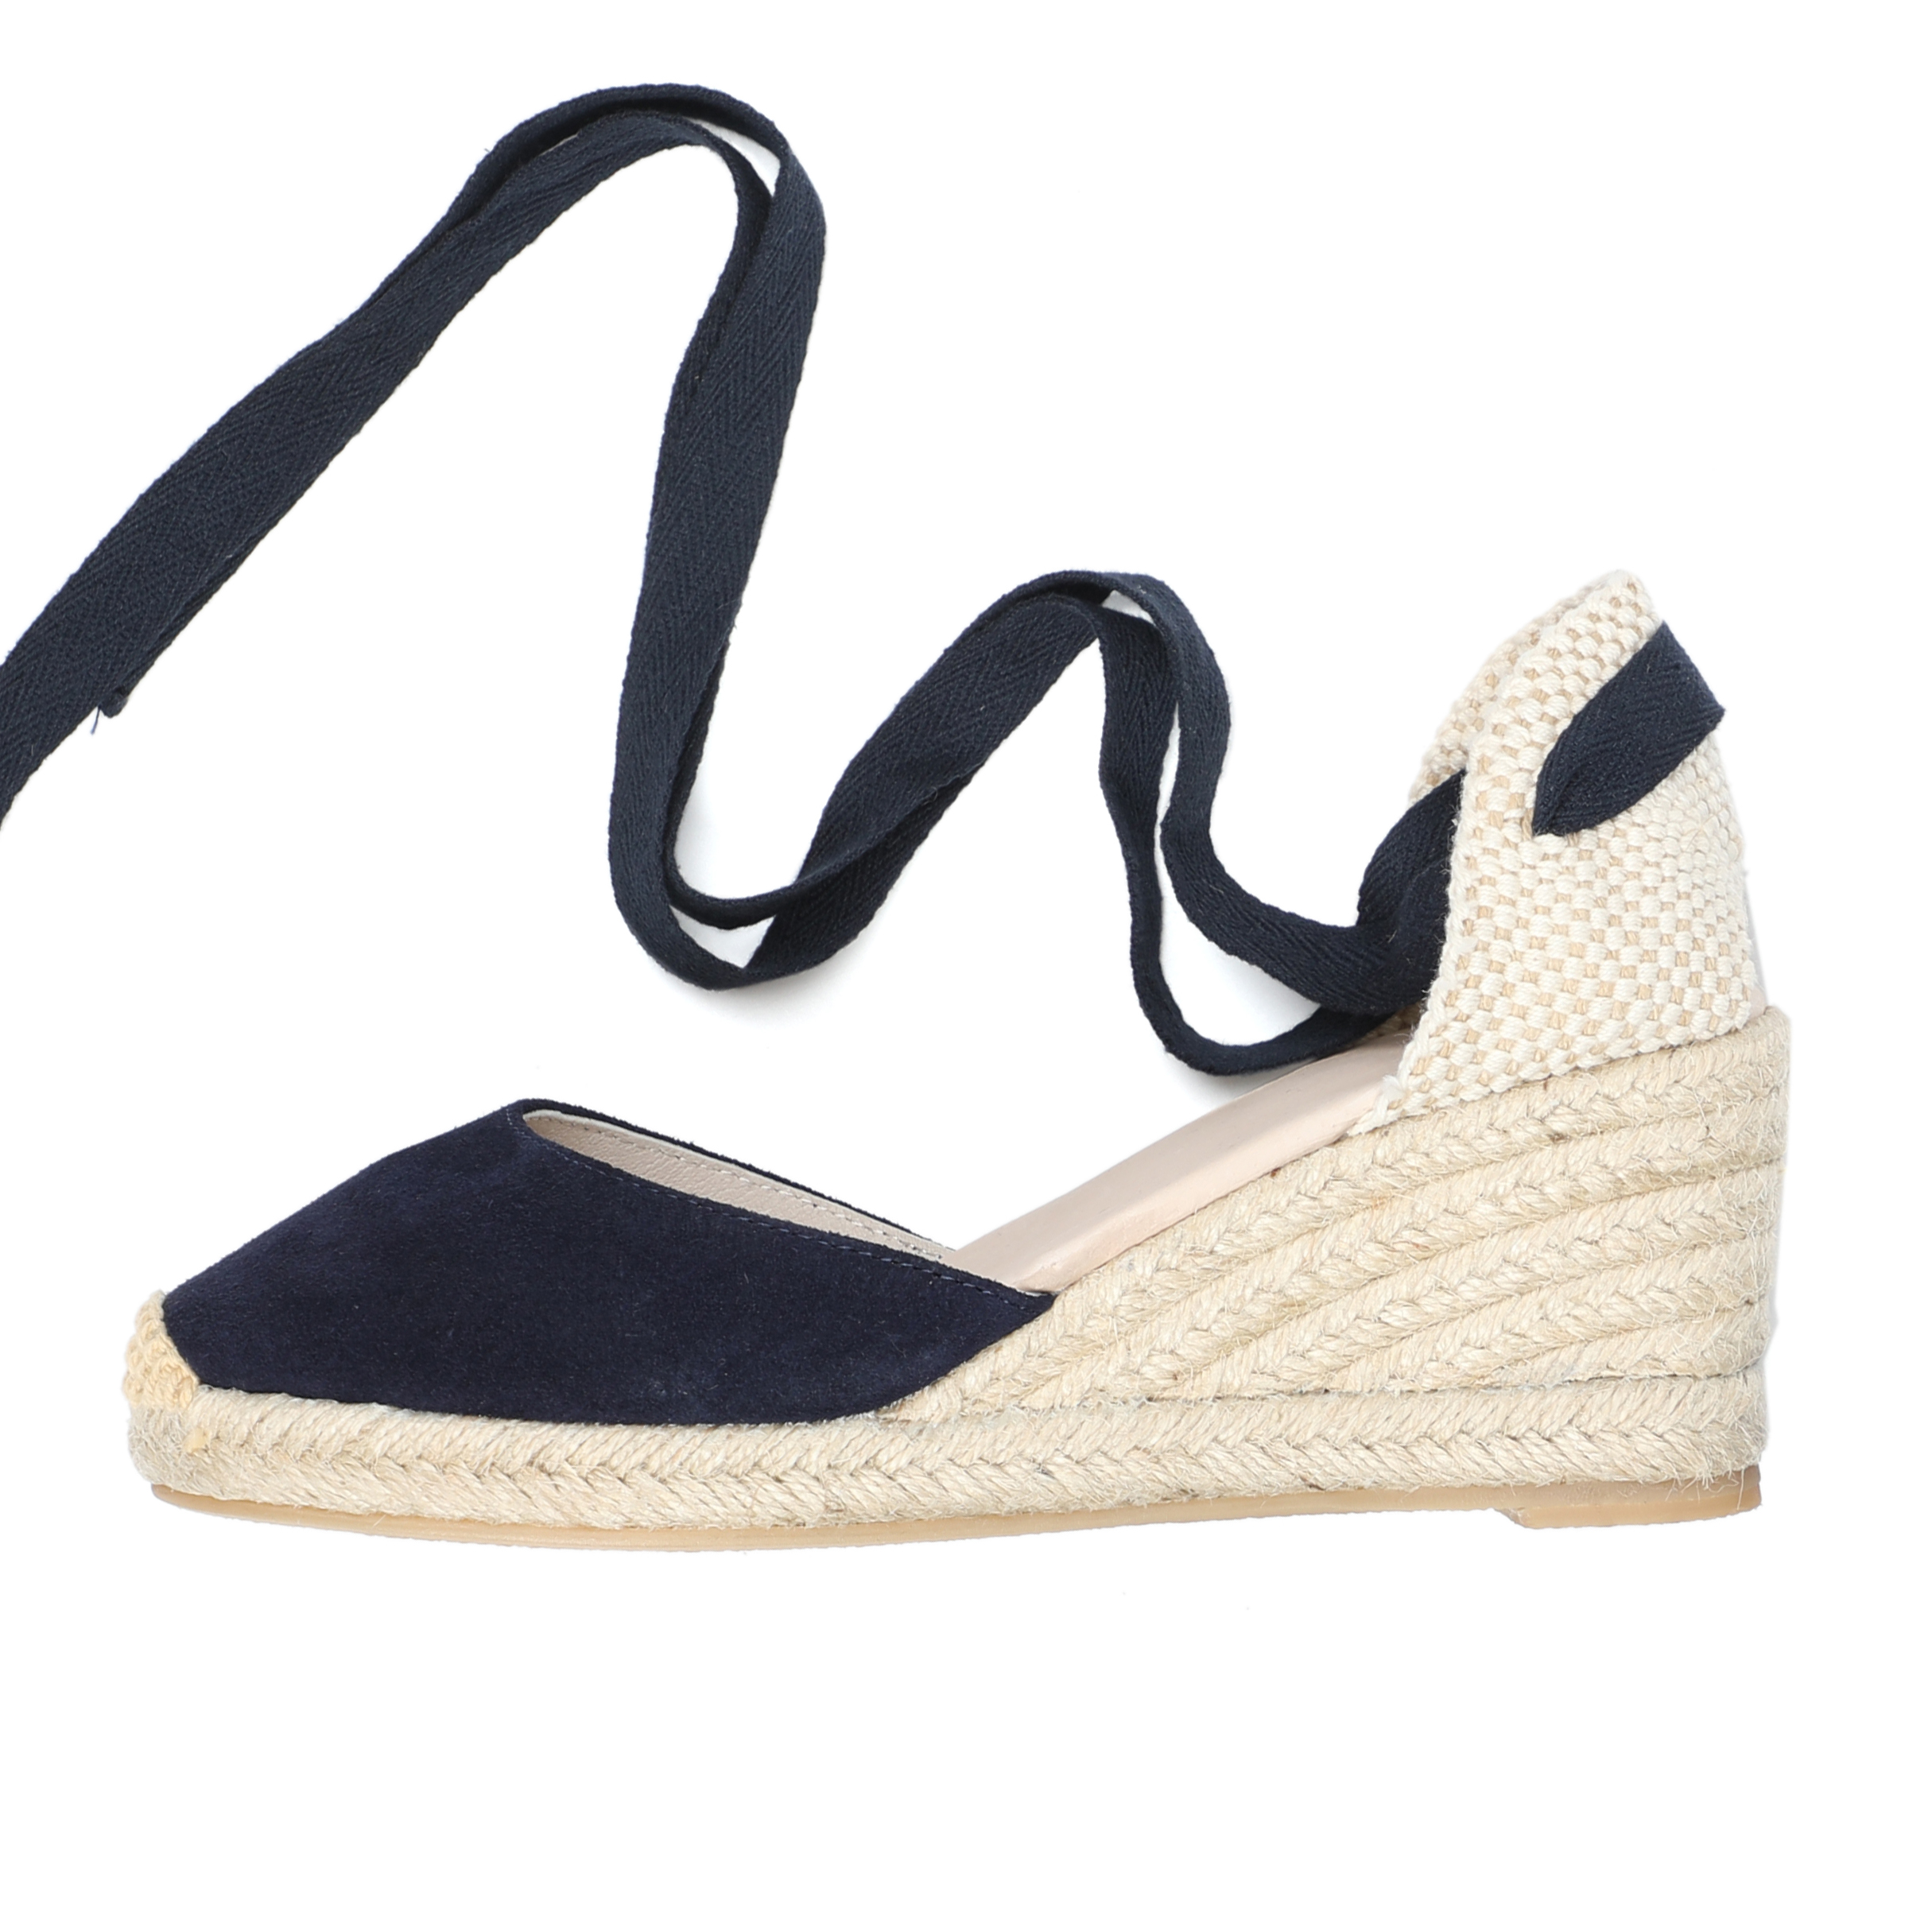 2019 new arrivel 70mm wedge espadrilles D Orsay women spring espadrilles genuine leather